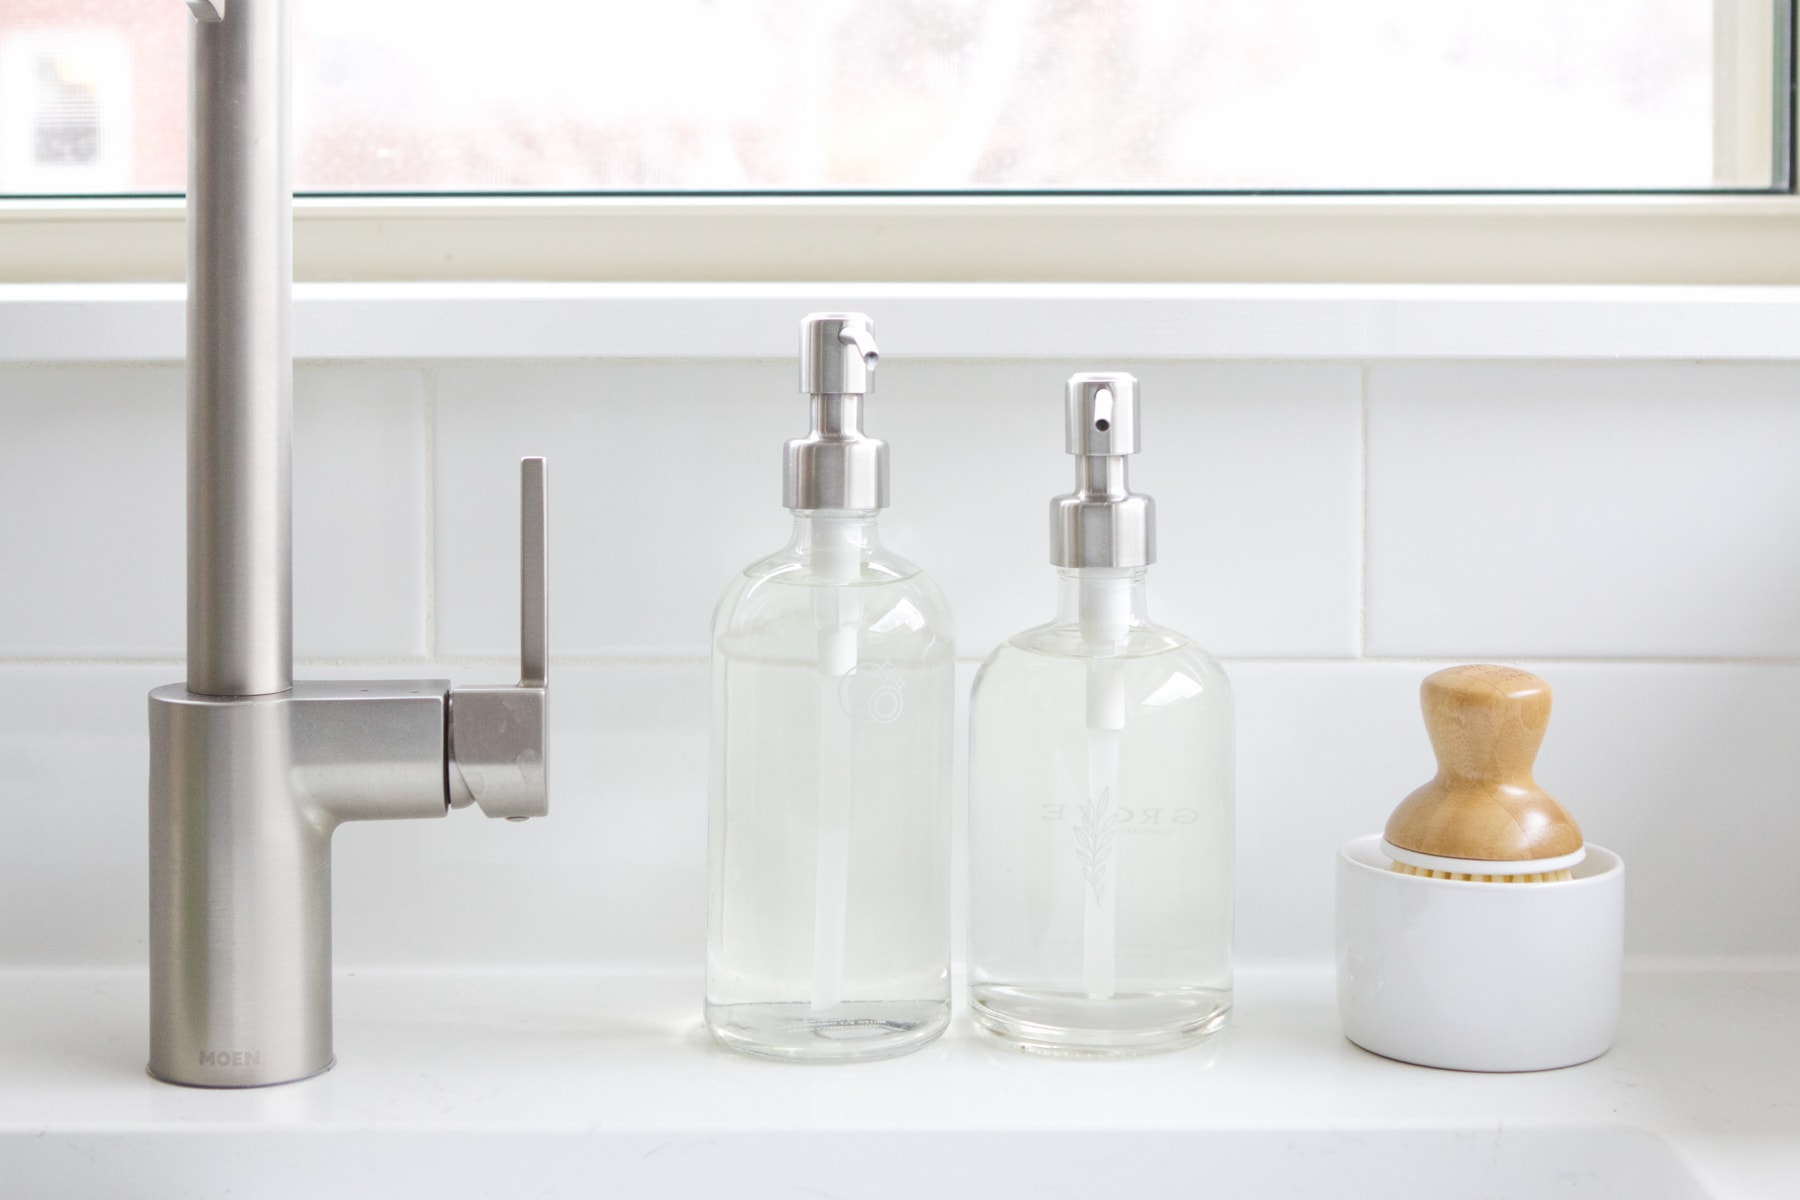 Cut soap dispensers